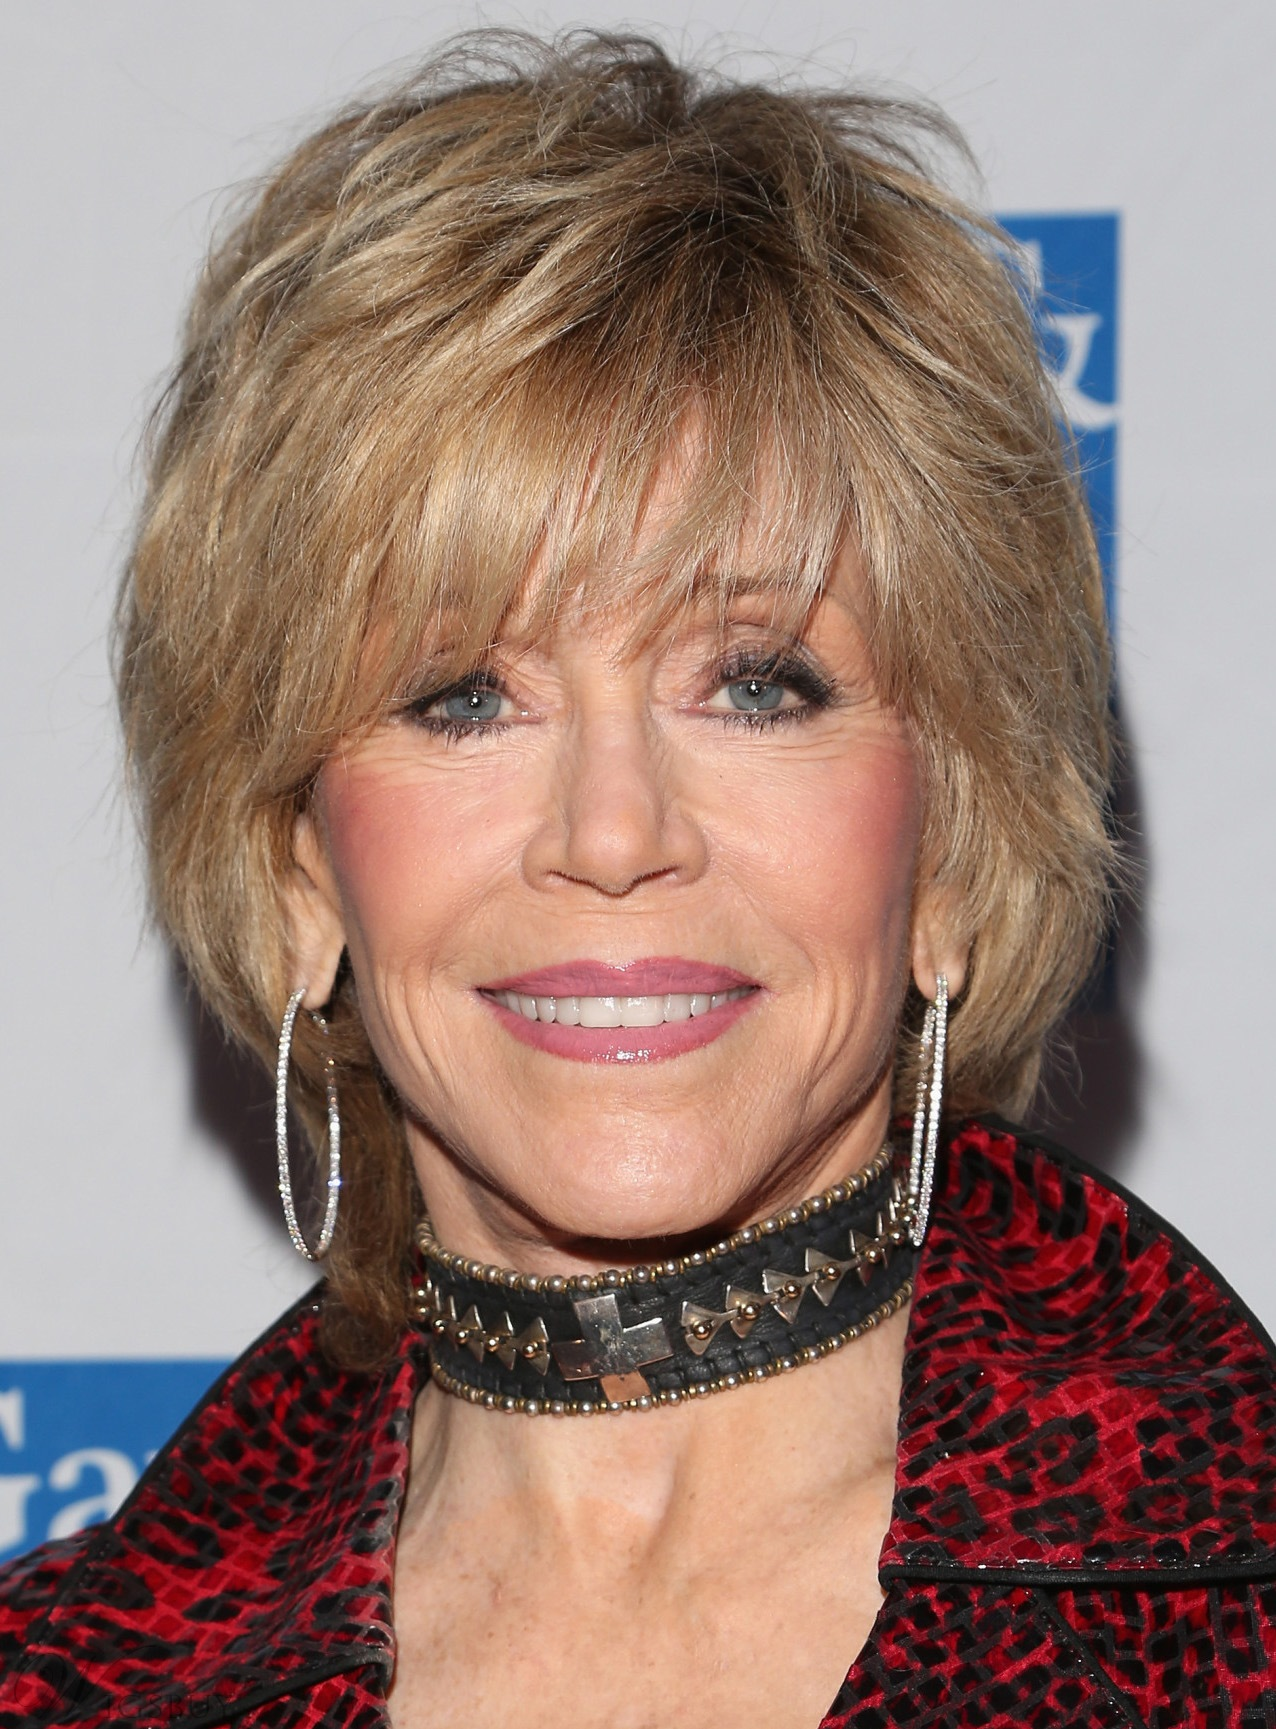 Jane Fonda Style Short Straight Layered Synthetic Hair Capless Wigs 8 Inches 11664617